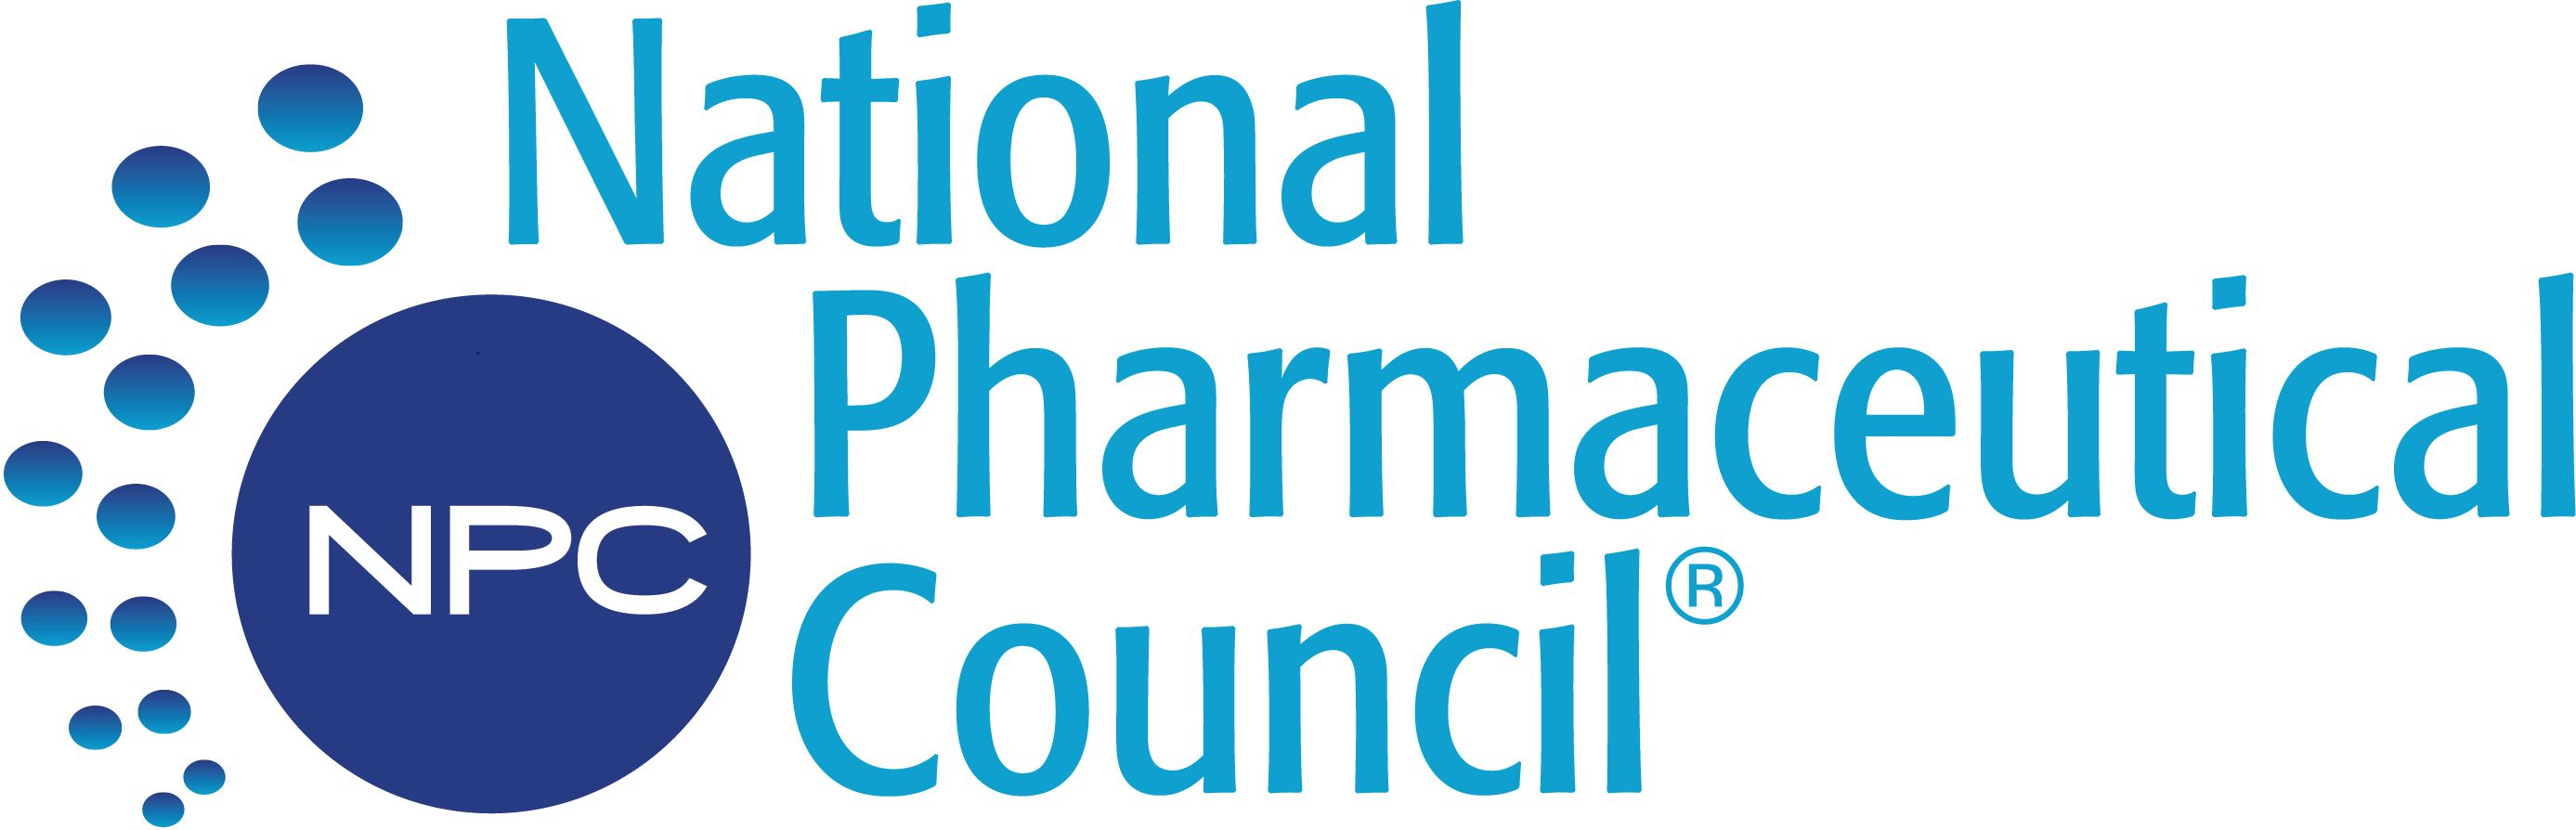 National Pharmaceutical Council logo